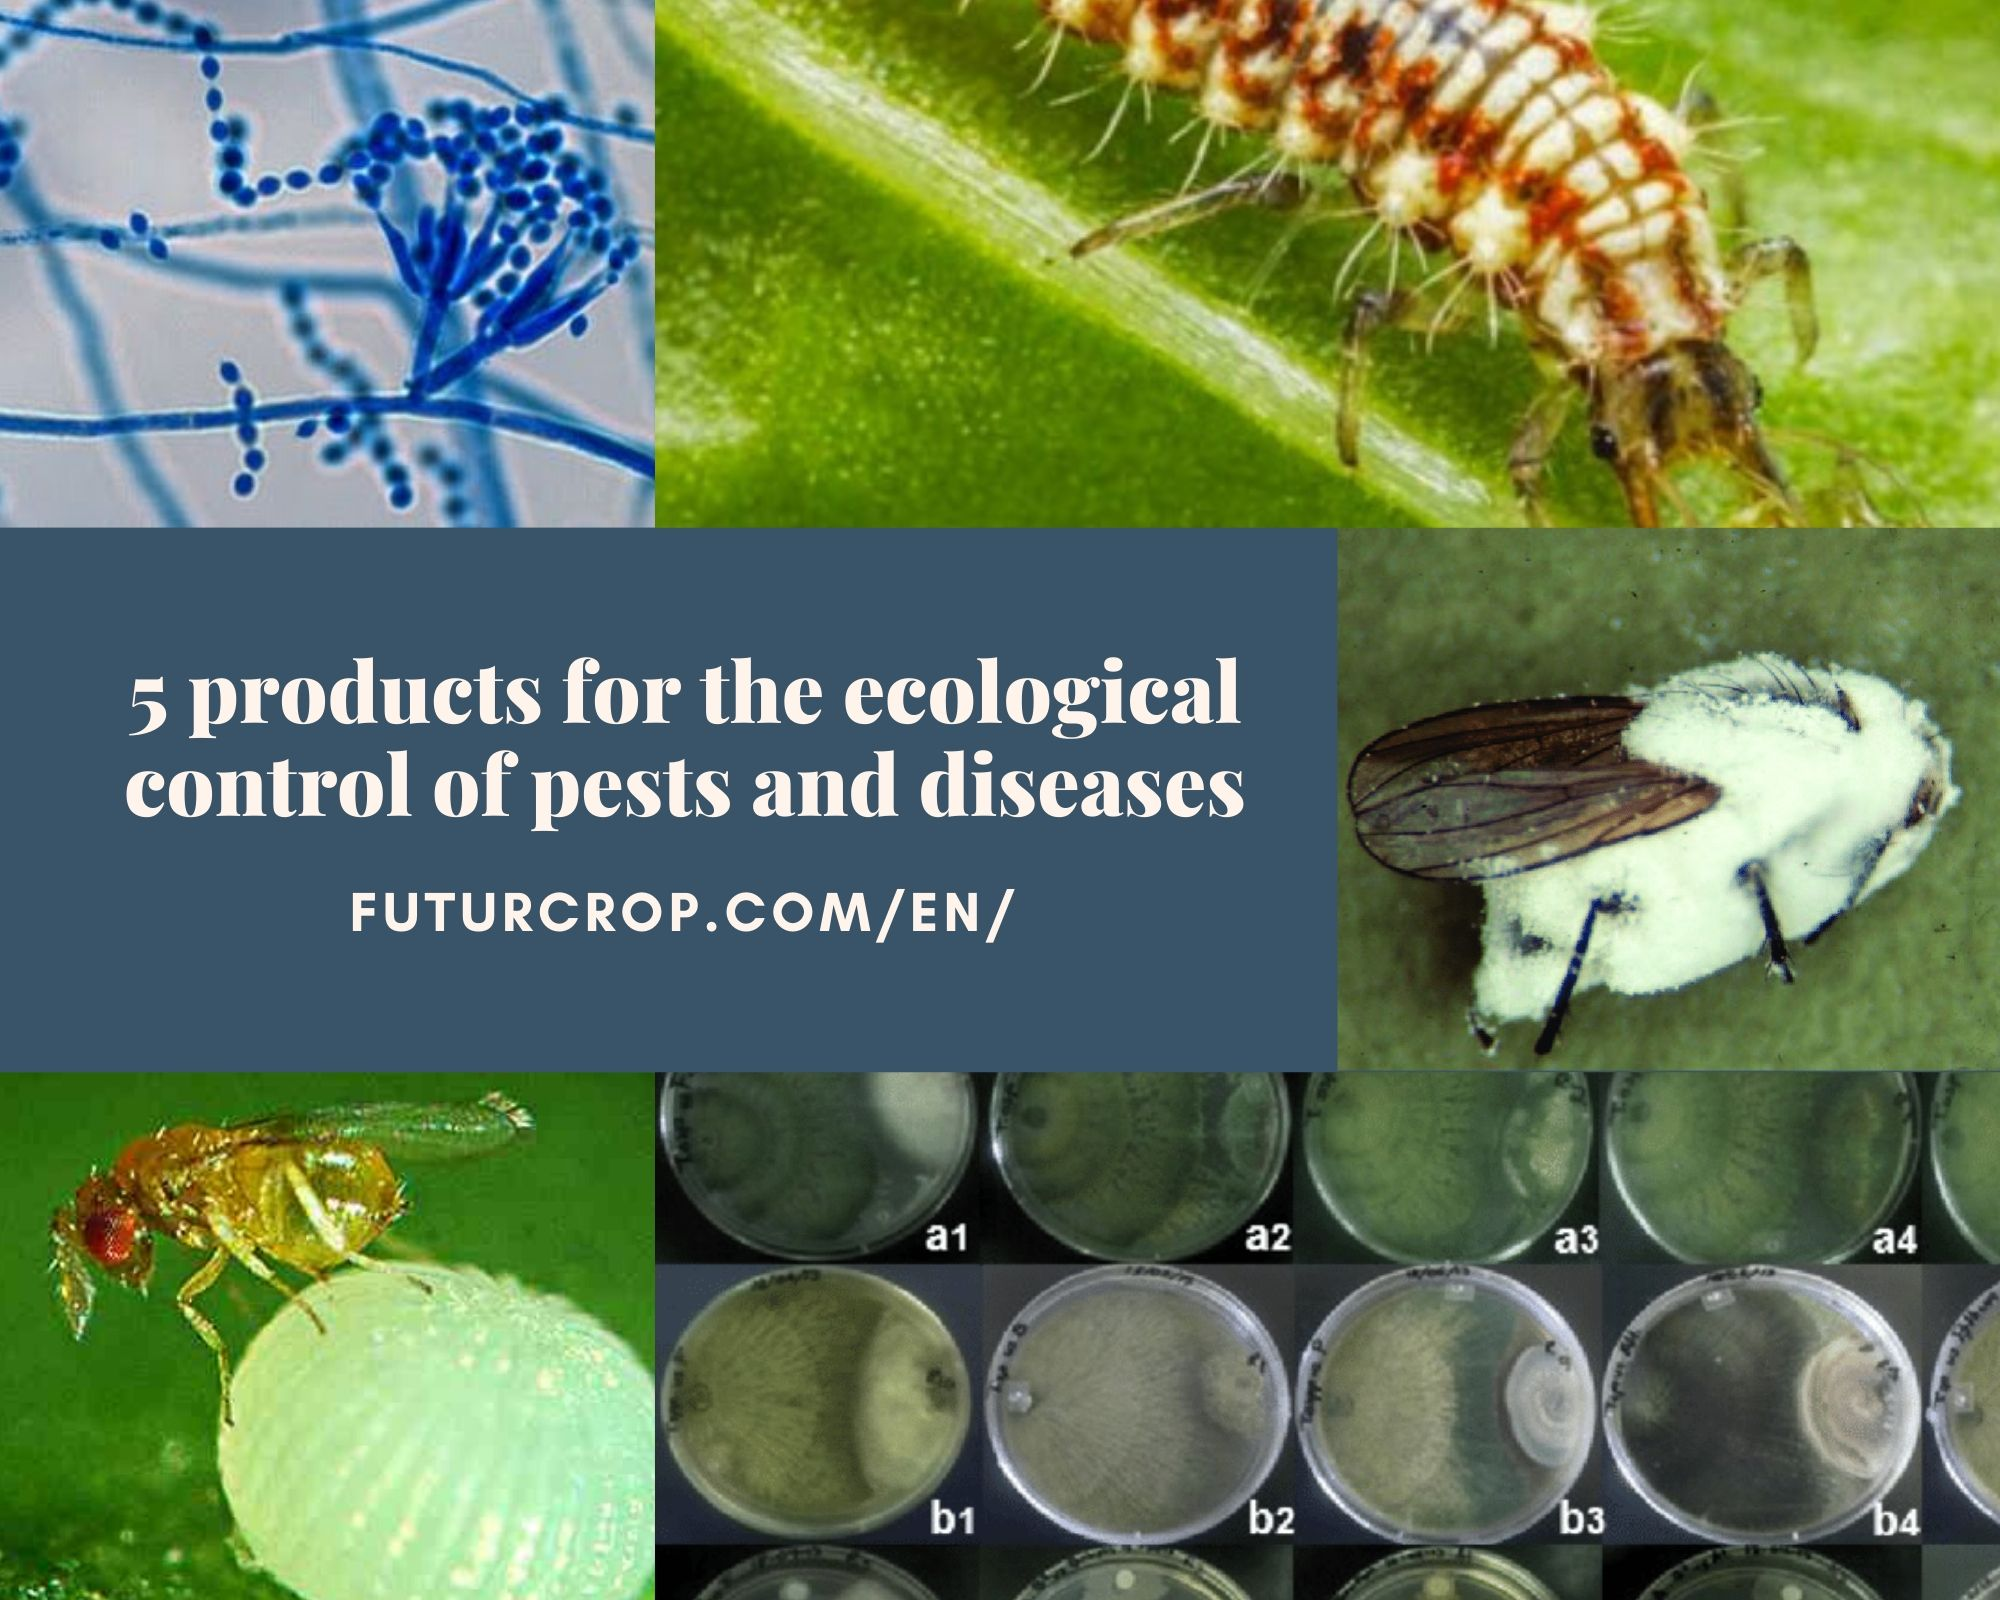 5 products for the ecological control of pests and diseases